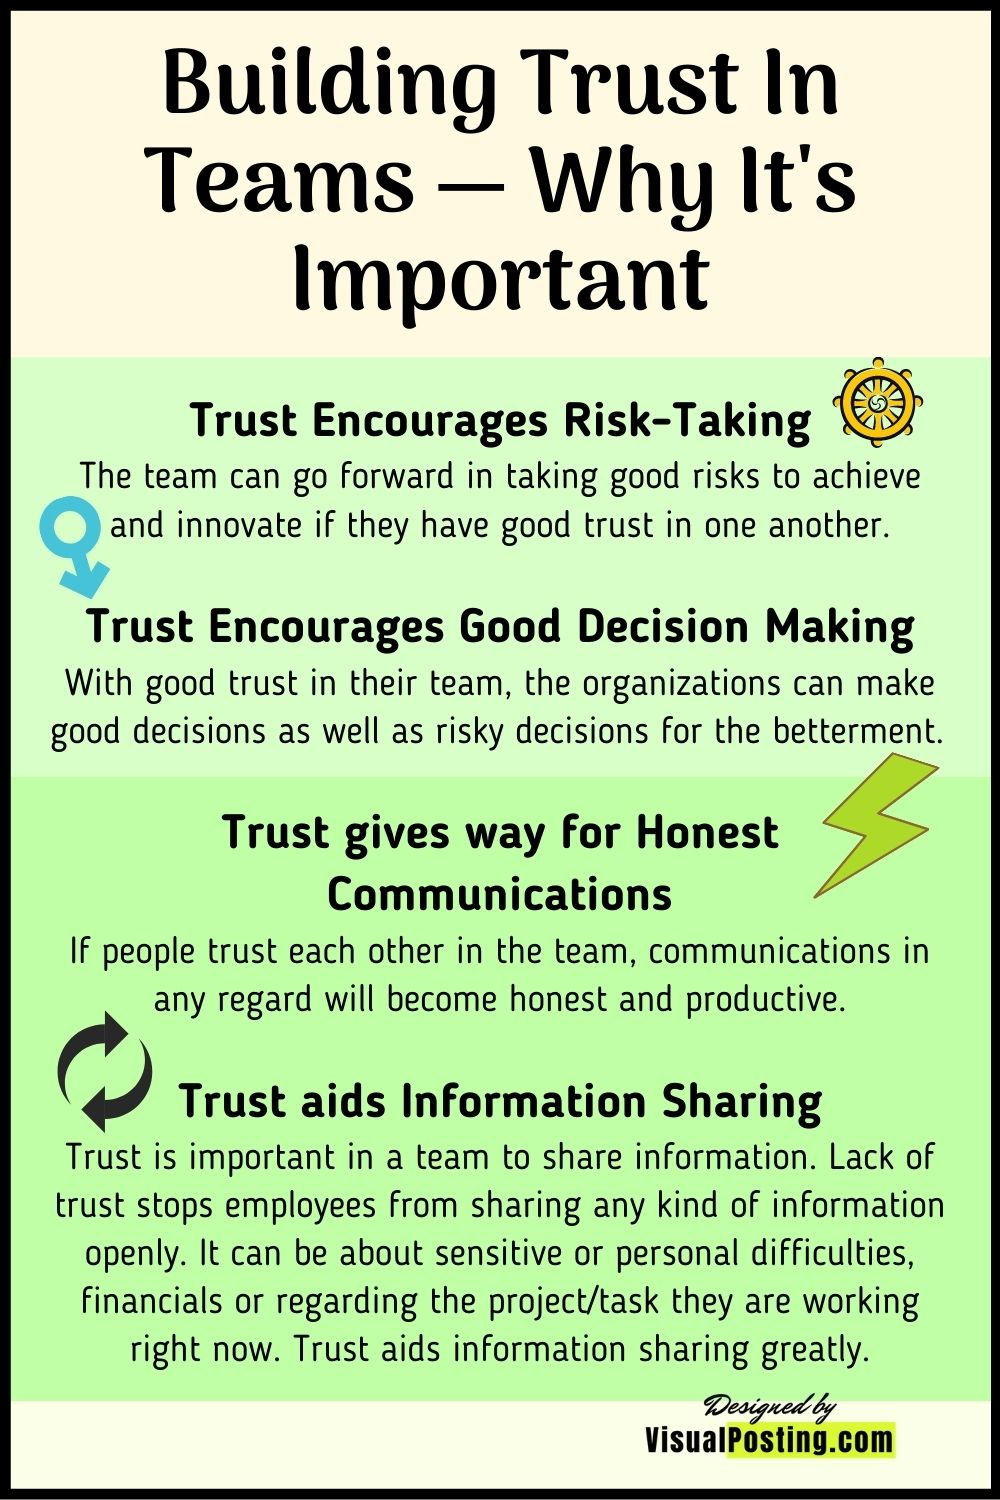 Building trust in teams - why its important.jpg